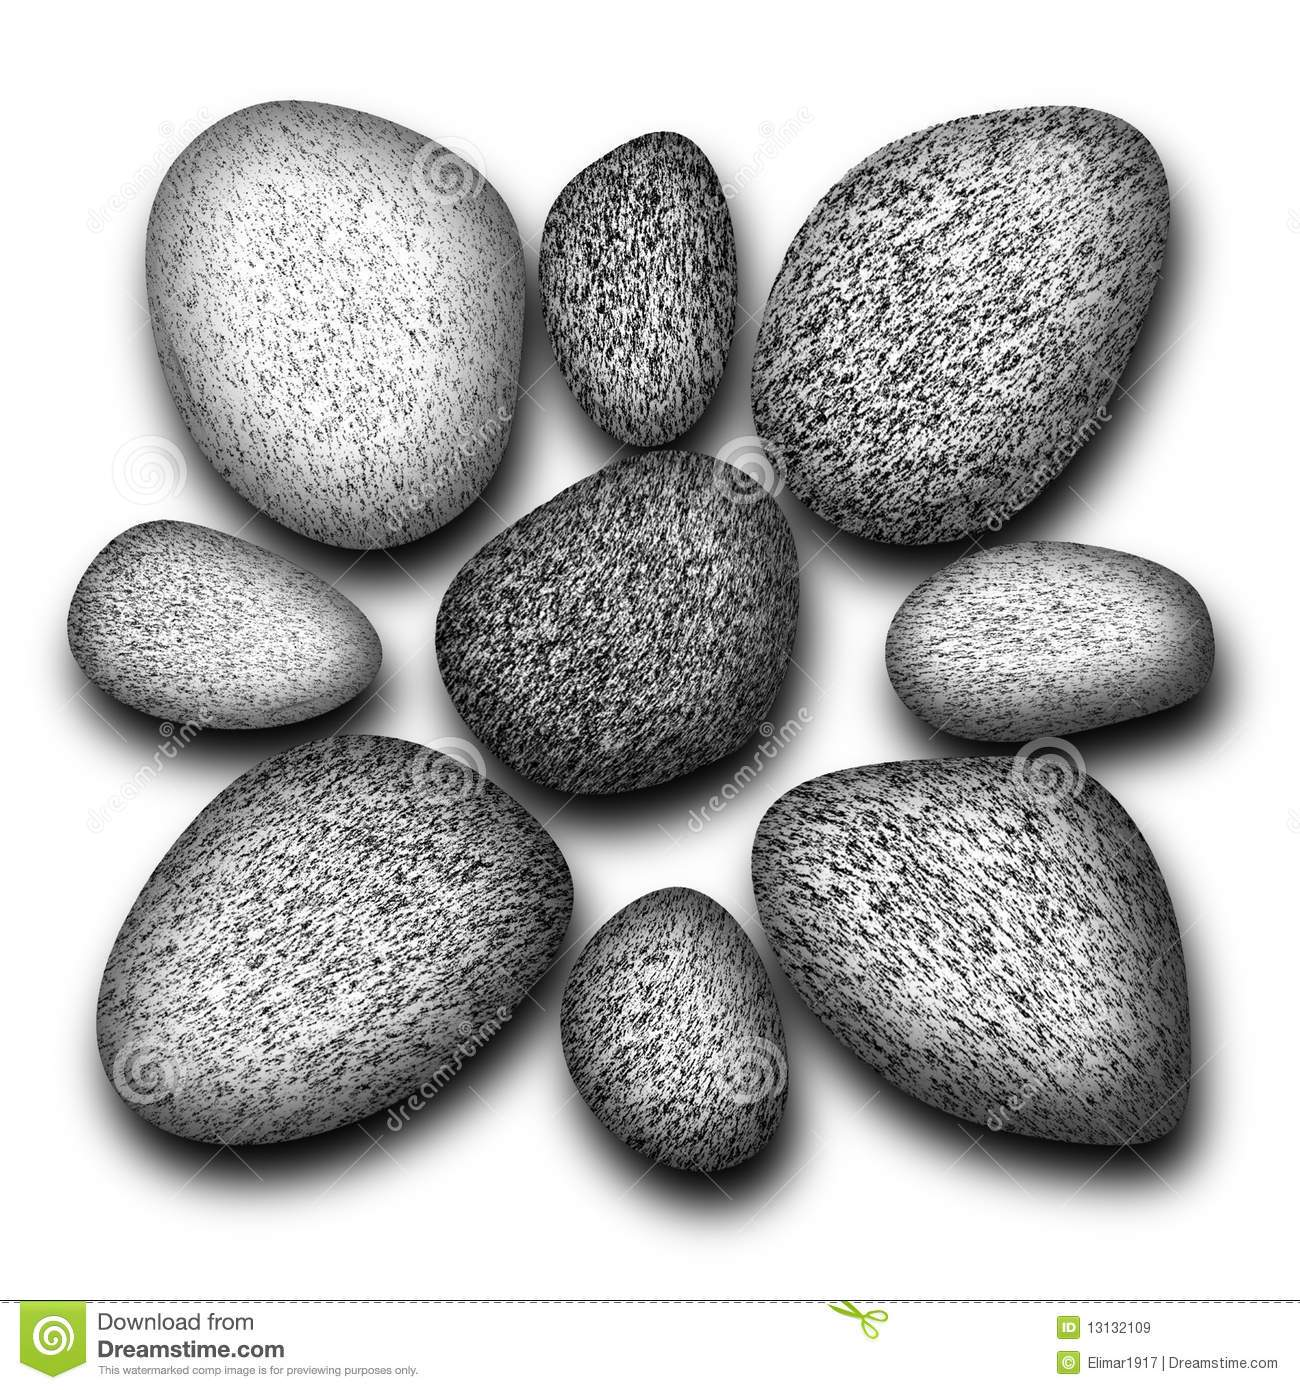 Pebbles clipart black and white banner freeuse library Pebbles clipart black and white 6 » Clipart Portal banner freeuse library